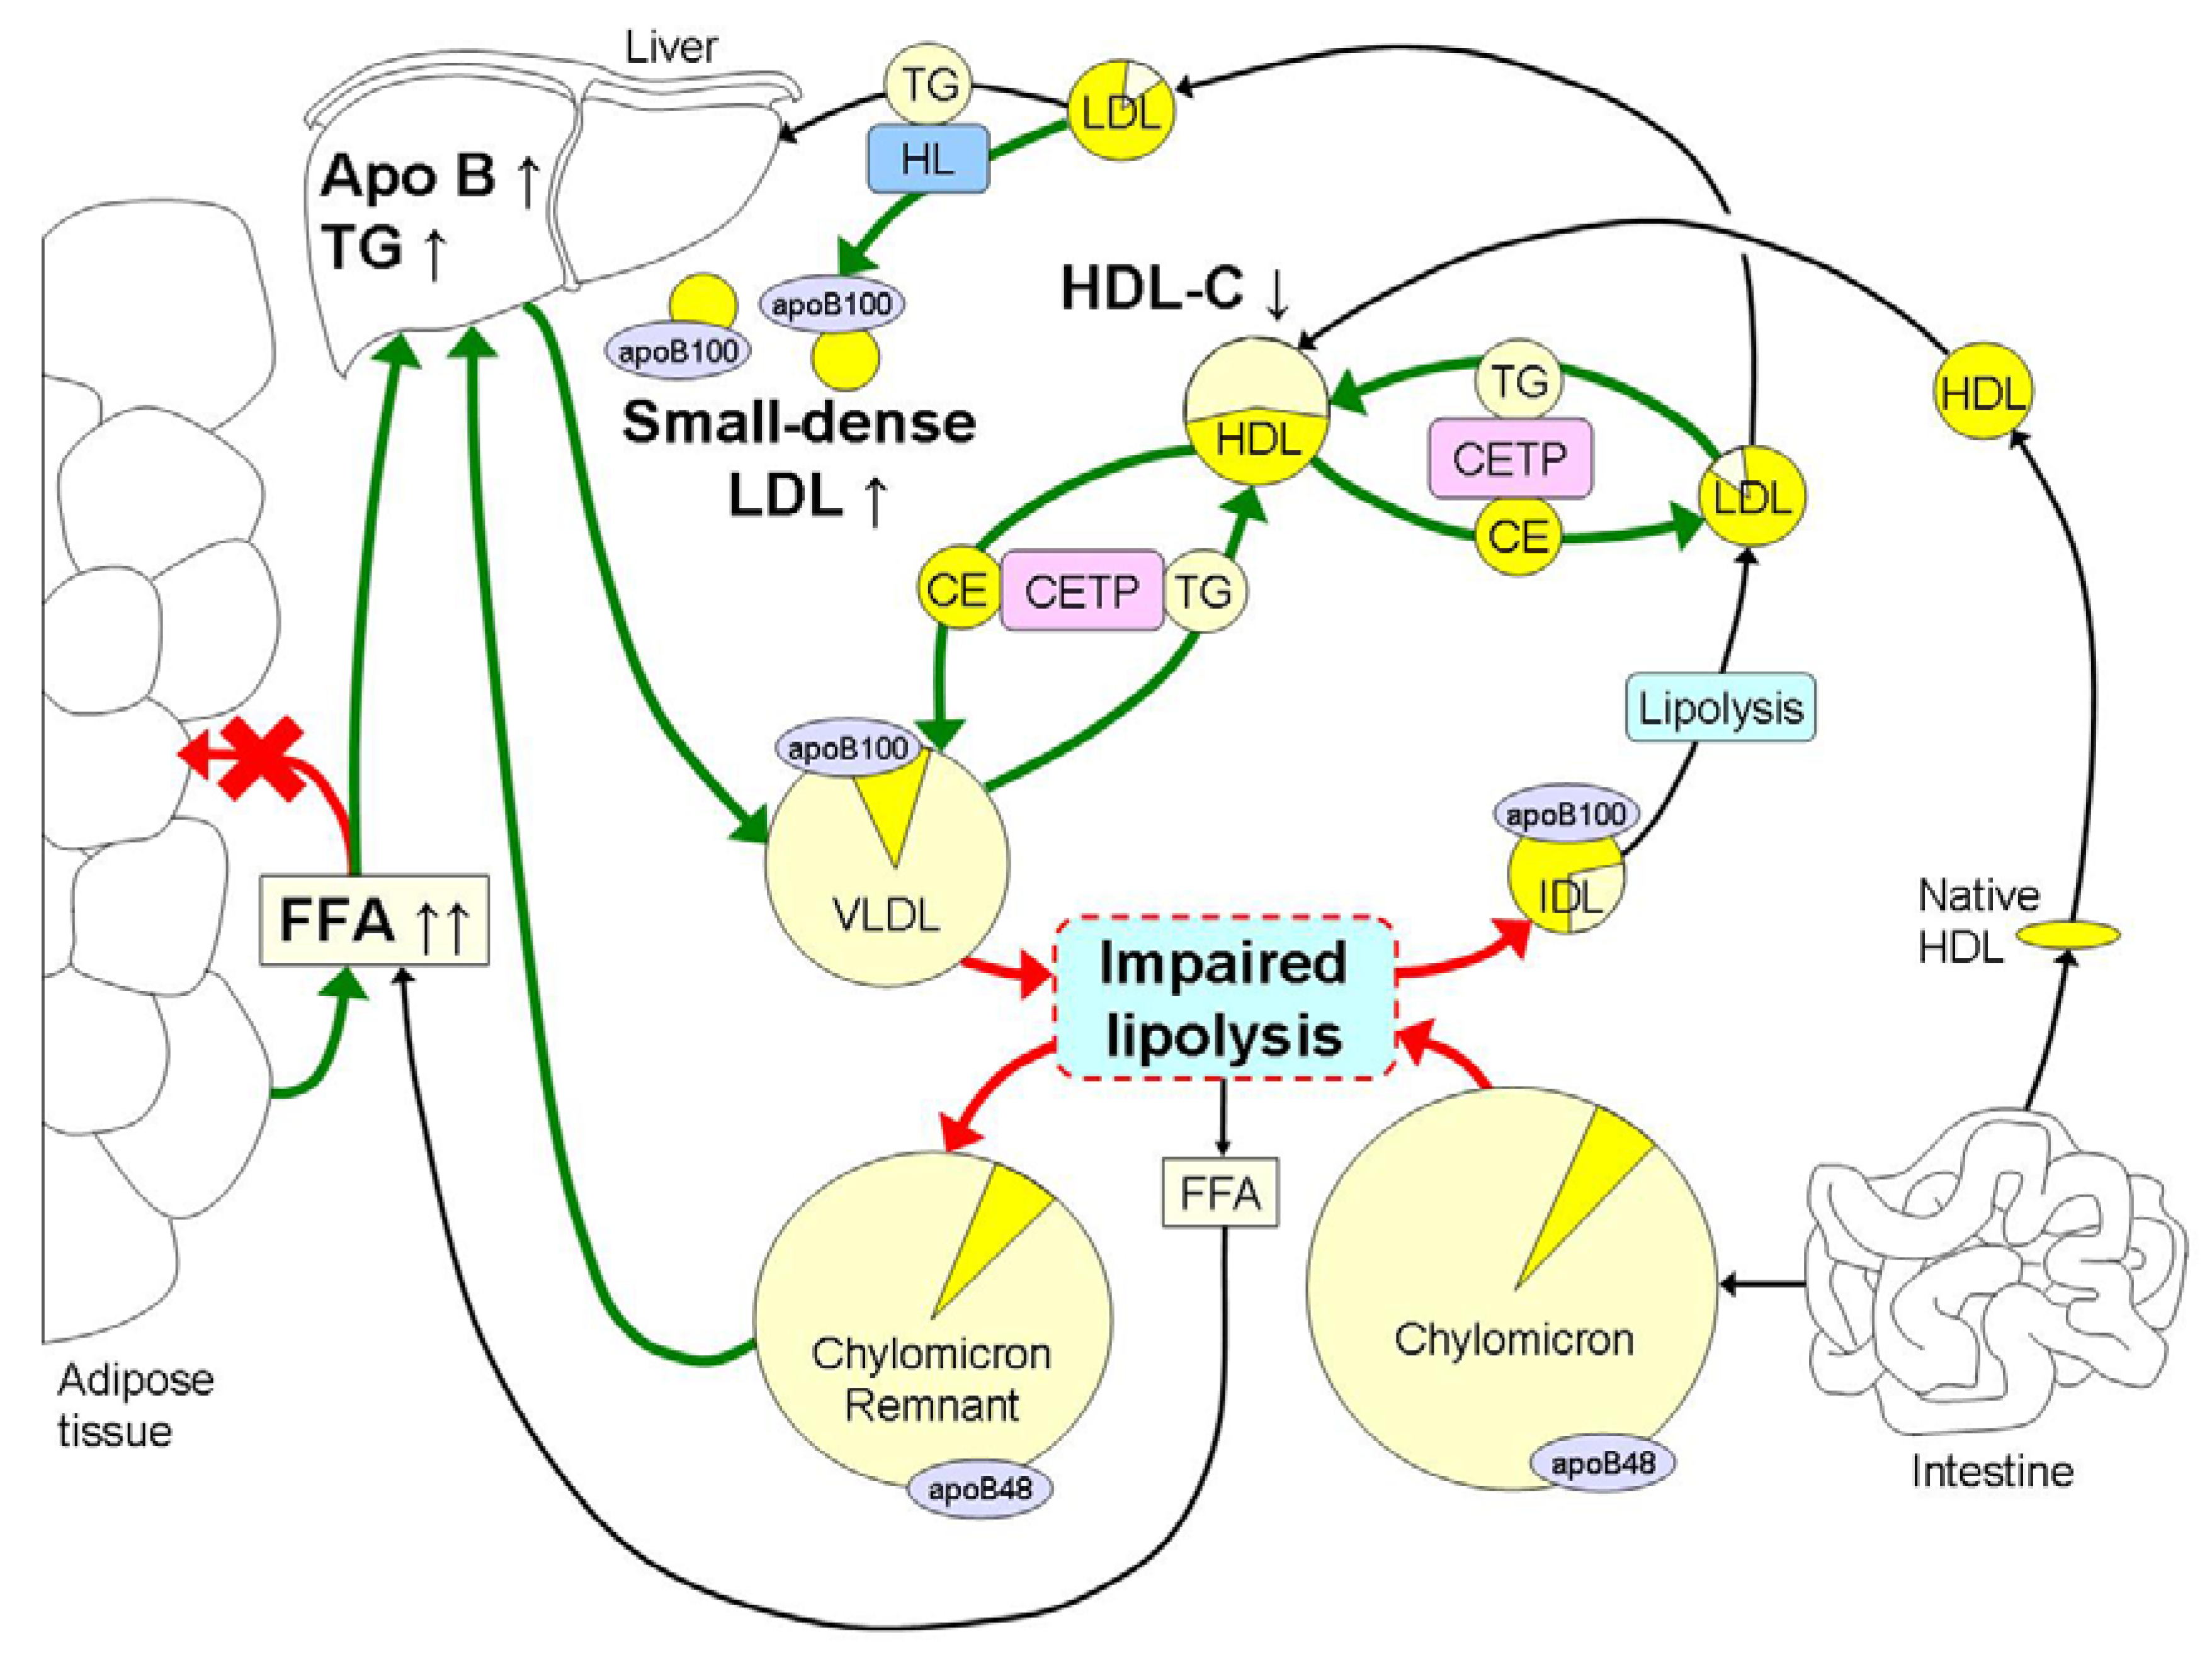 Nutrients | Free Full-Text | Dyslipidemia in Obesity: Mechanisms and